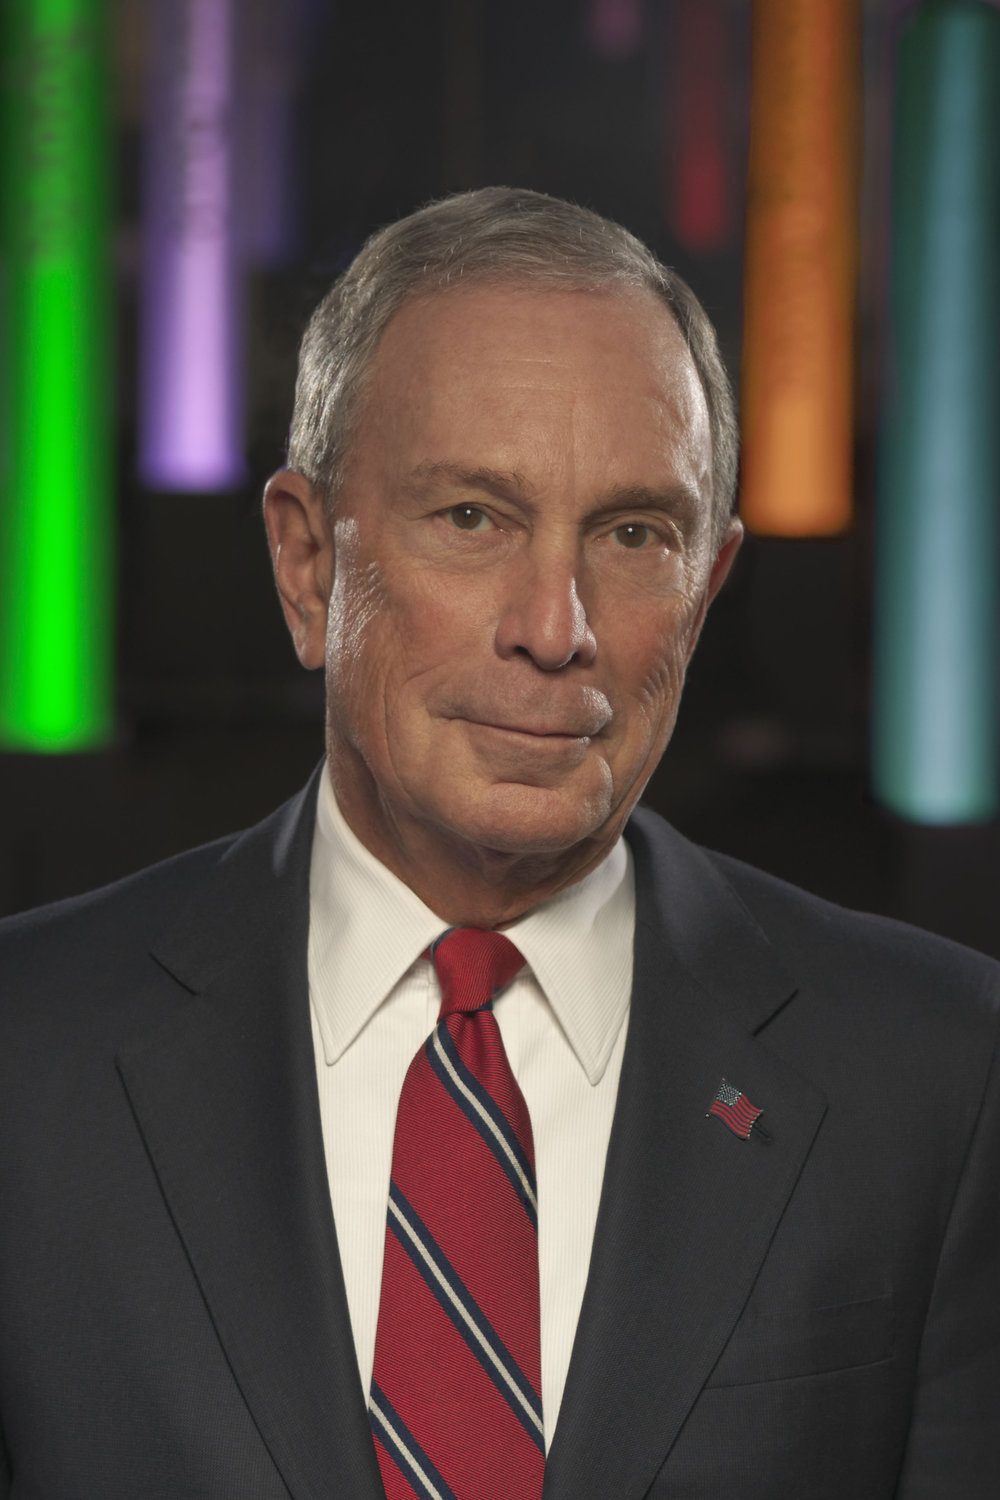 Former Mayor Michael Bloomberg's foundation is donating money to fight climate change in Florida. Photo via Bloomberg Philanthropies.